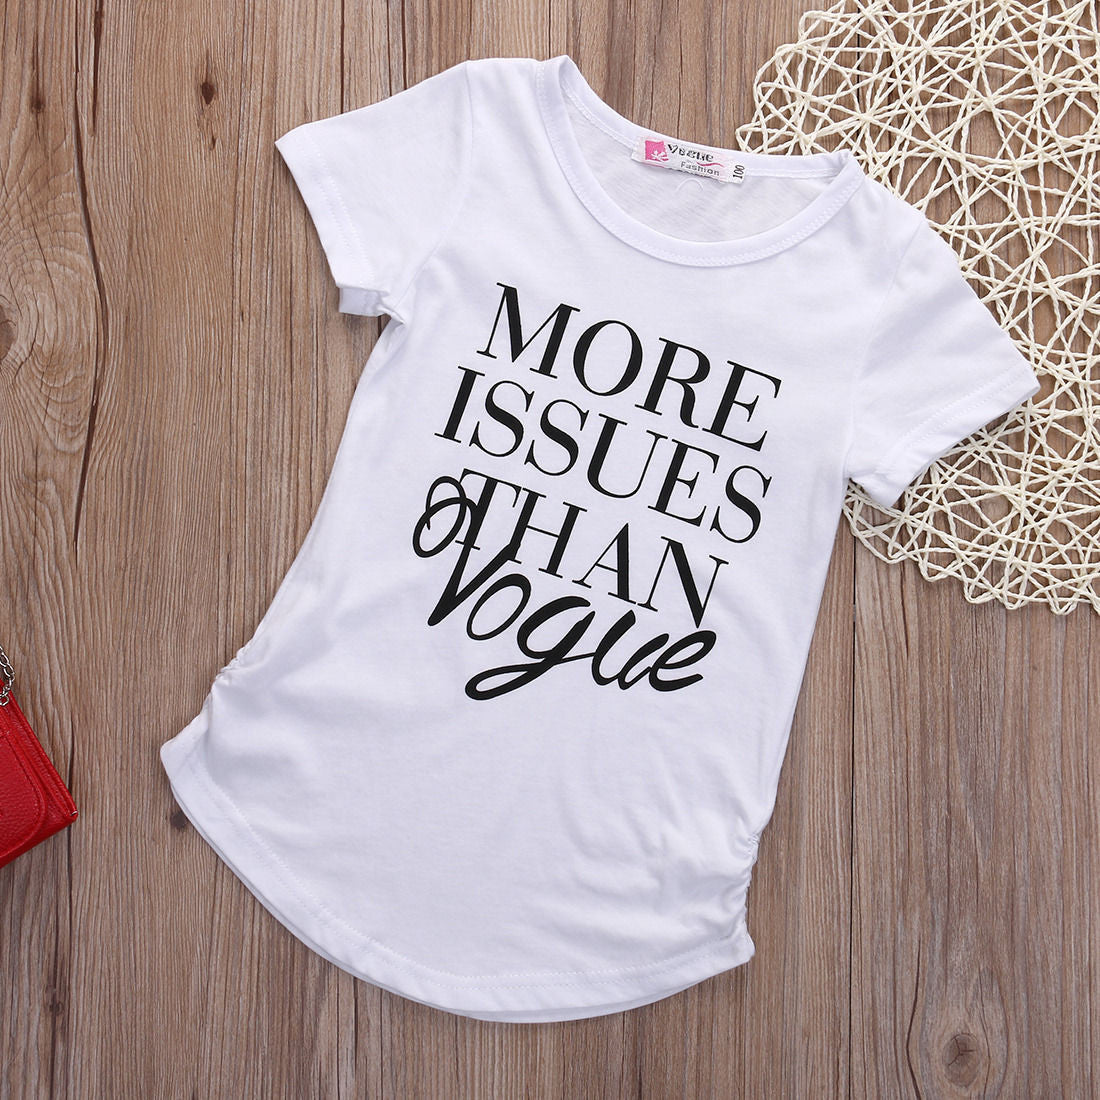 White / 6New Kids Baby Girls Summer Fashion Cotton Short sleeve T-shirt Tops Clothes